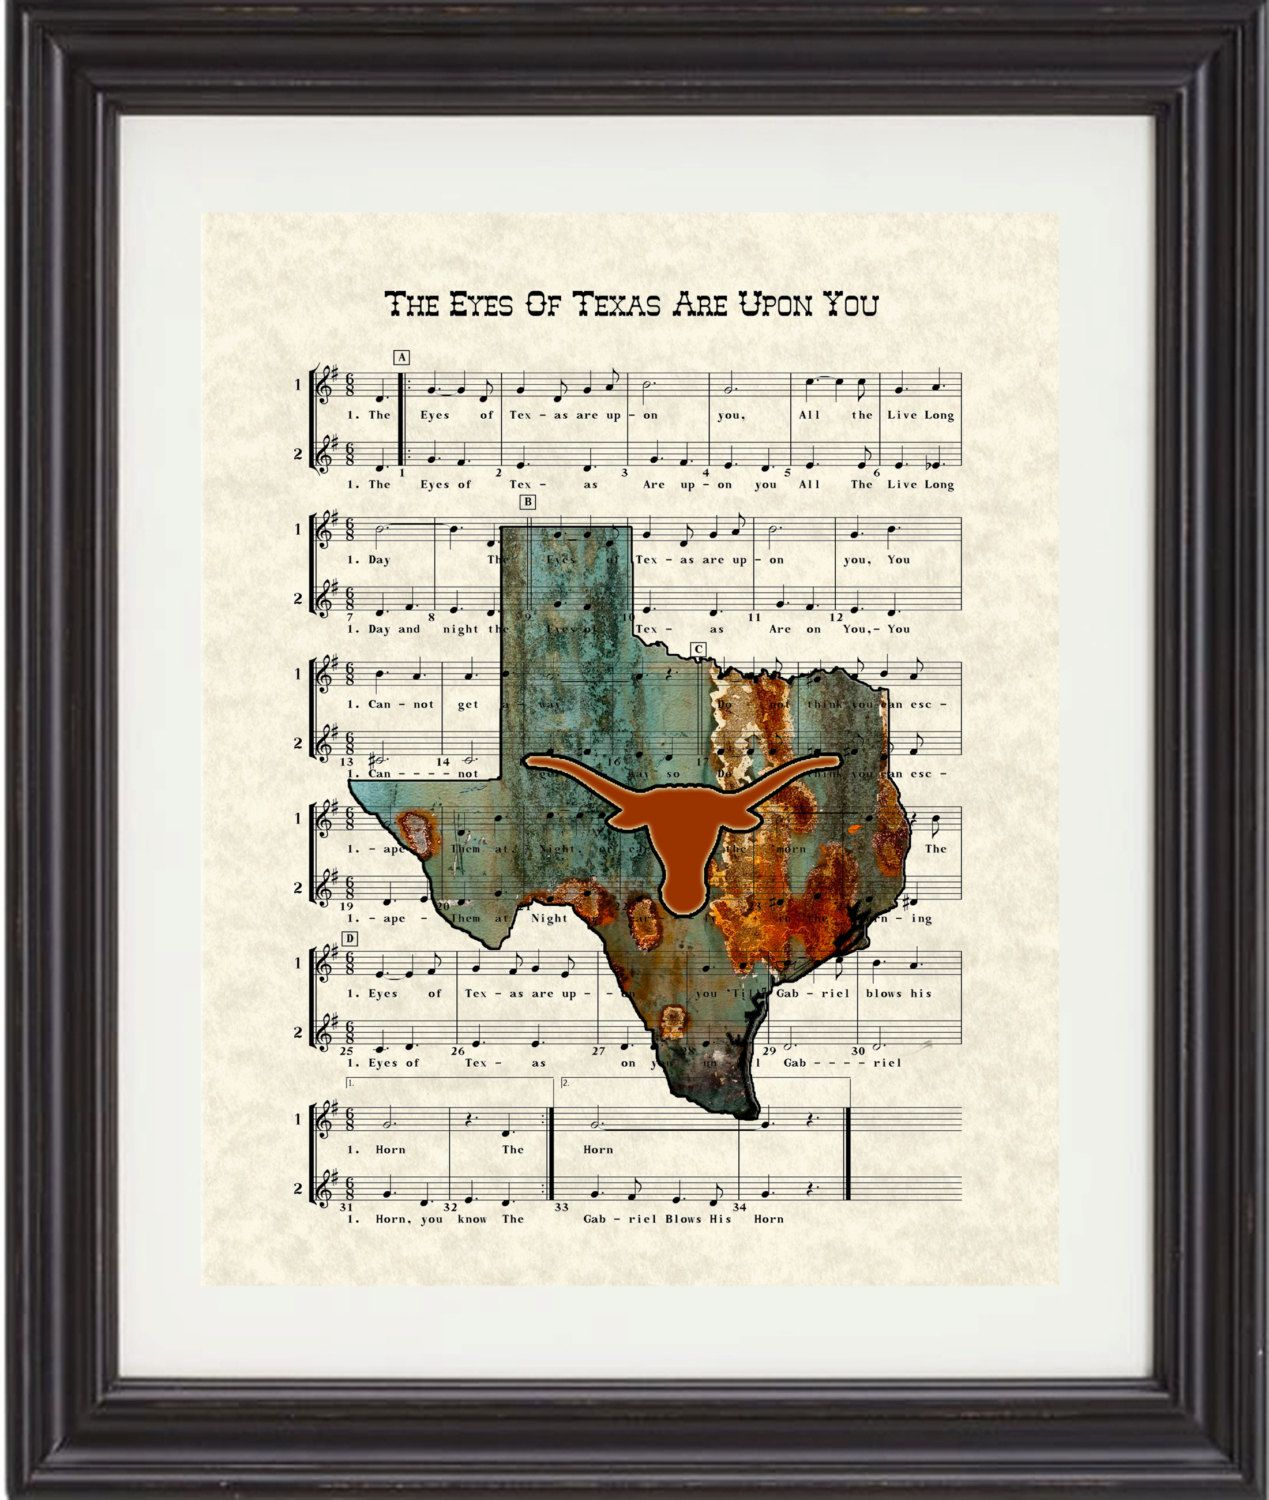 Texas Longhorns UT Fight Song Texas Map The by TexasGirlDesigns, $15.00